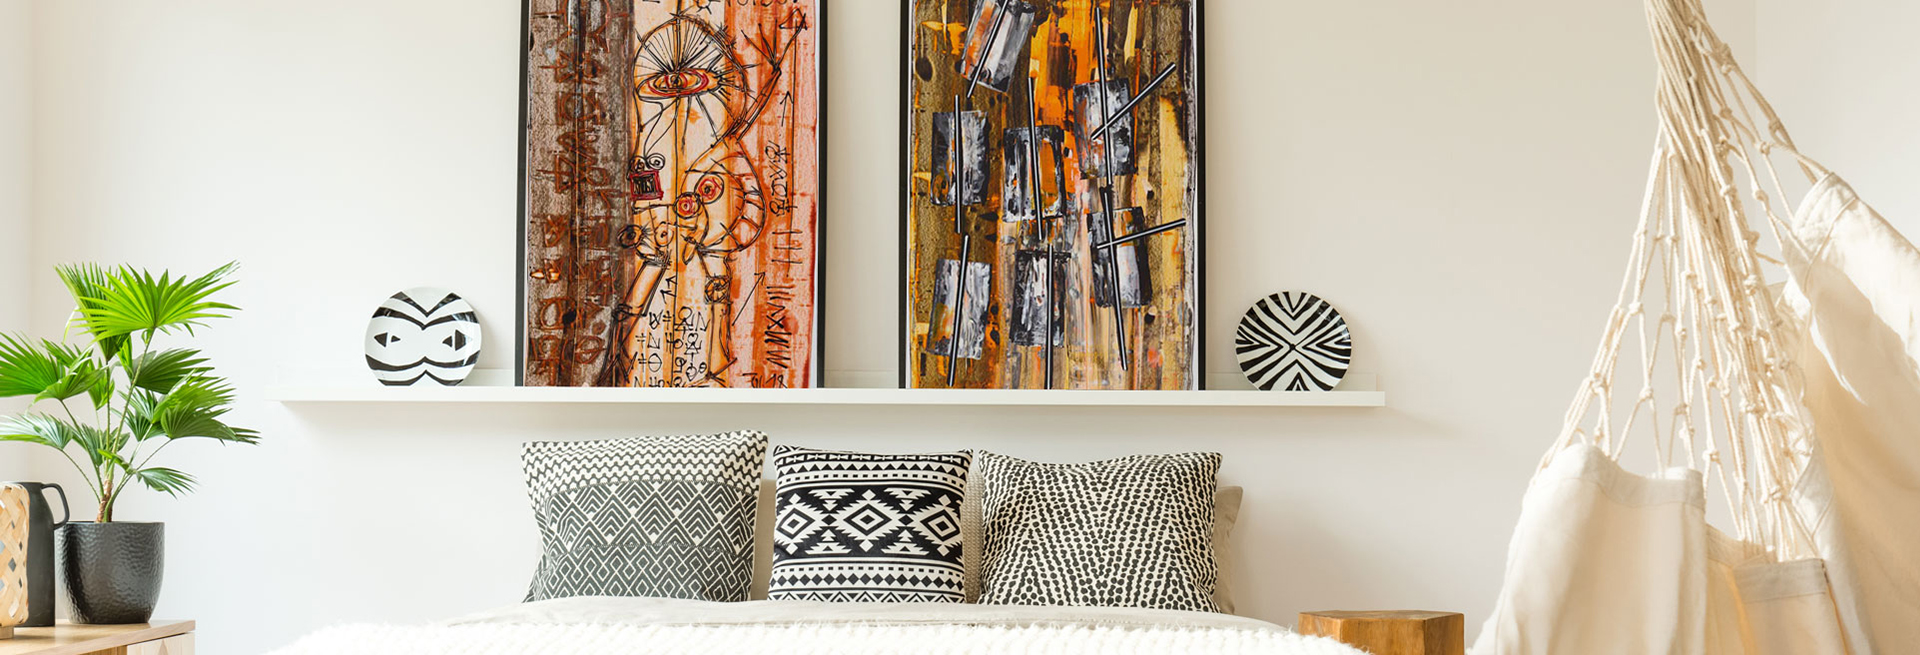 Discover the trends in decoration on ART-PRINTS-ON-DEMAND.COM